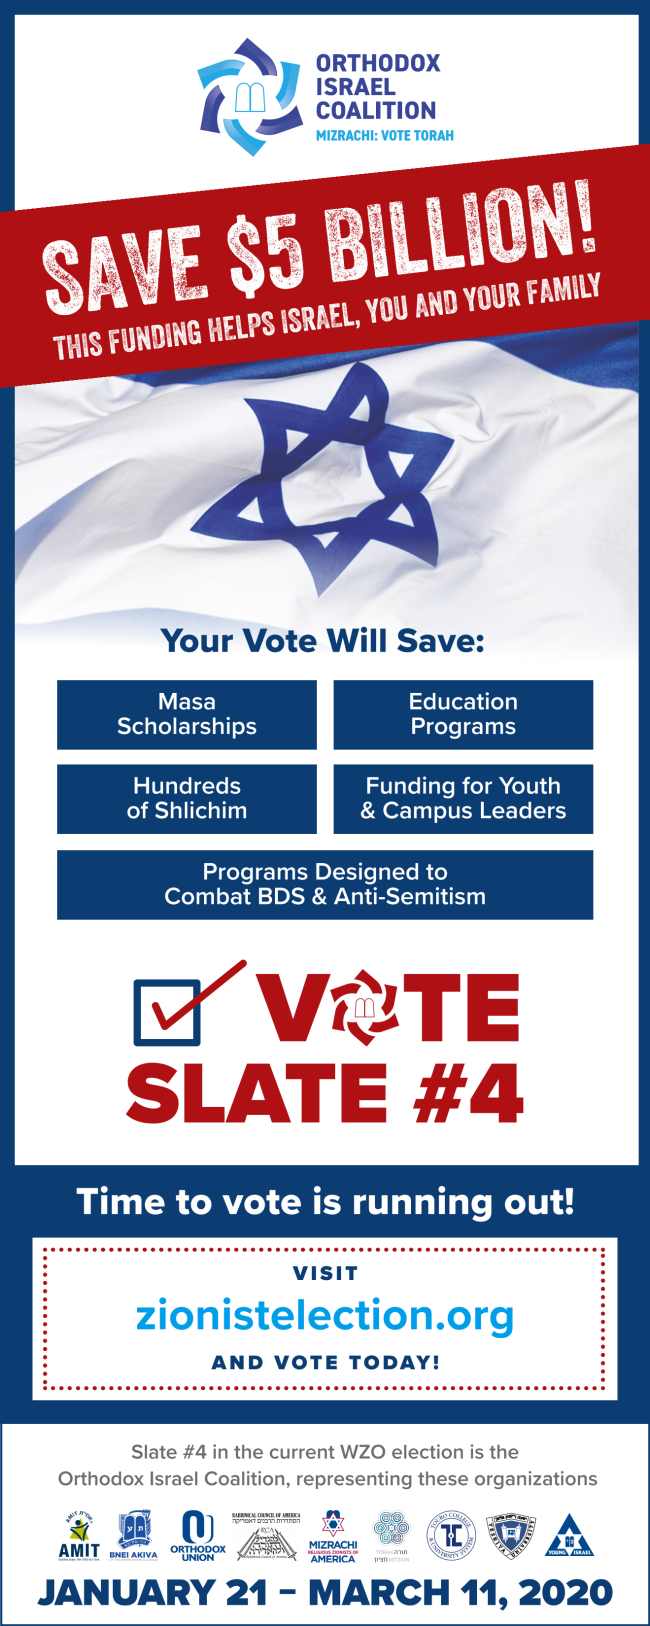 Vote for a strong Israel and upholding Jewish tradition